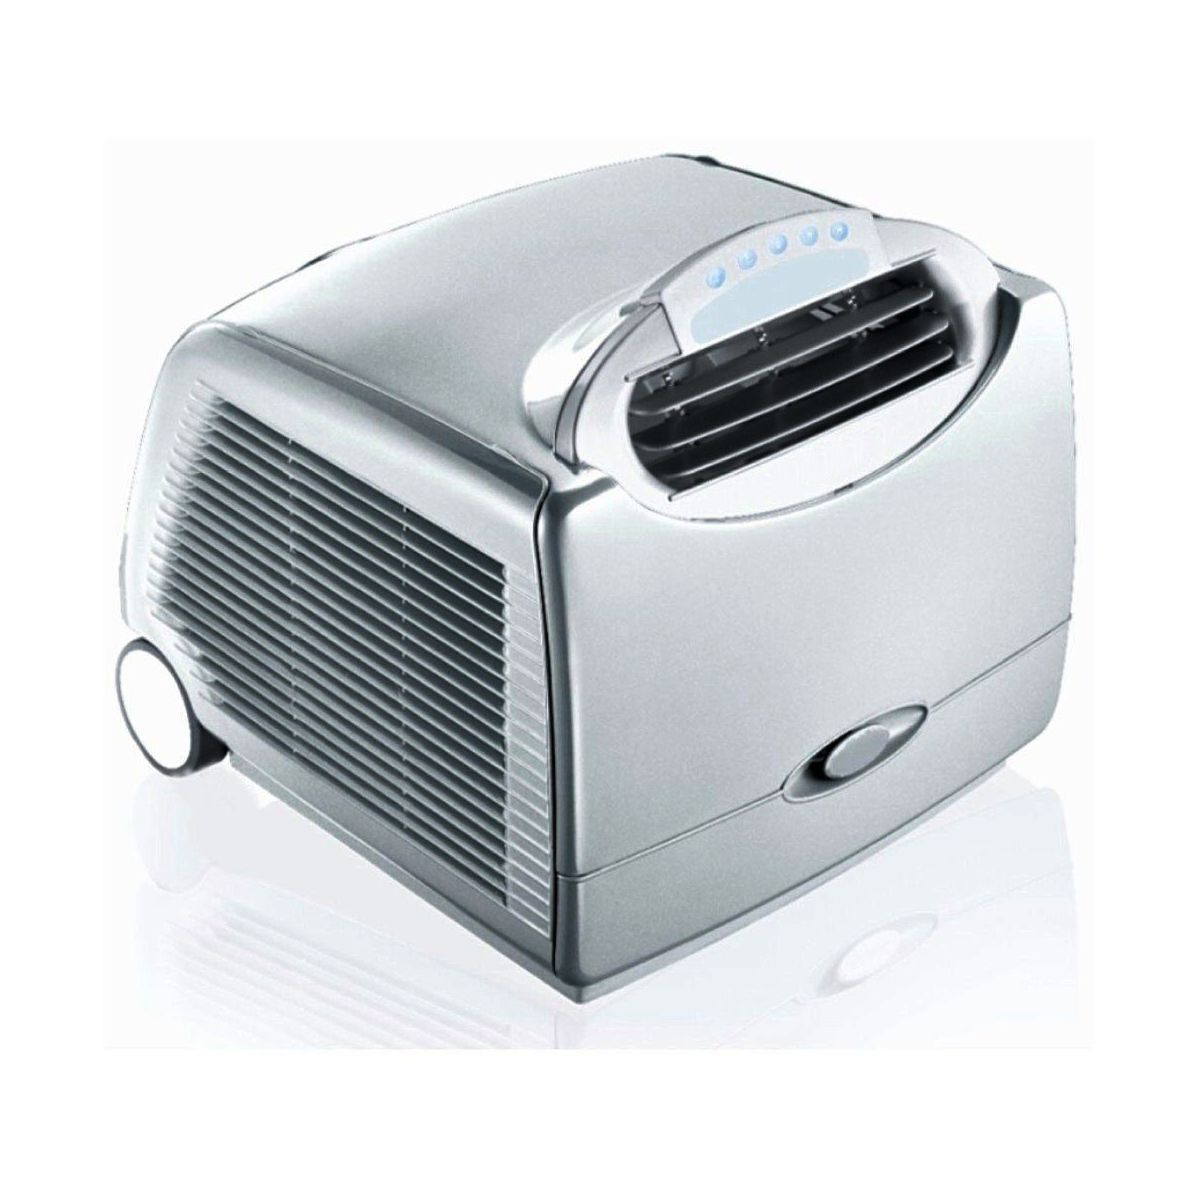 The Sharp Portabale Air Conditioner Portable Air Conditioner Tent Air Conditioner Air Conditioner Units